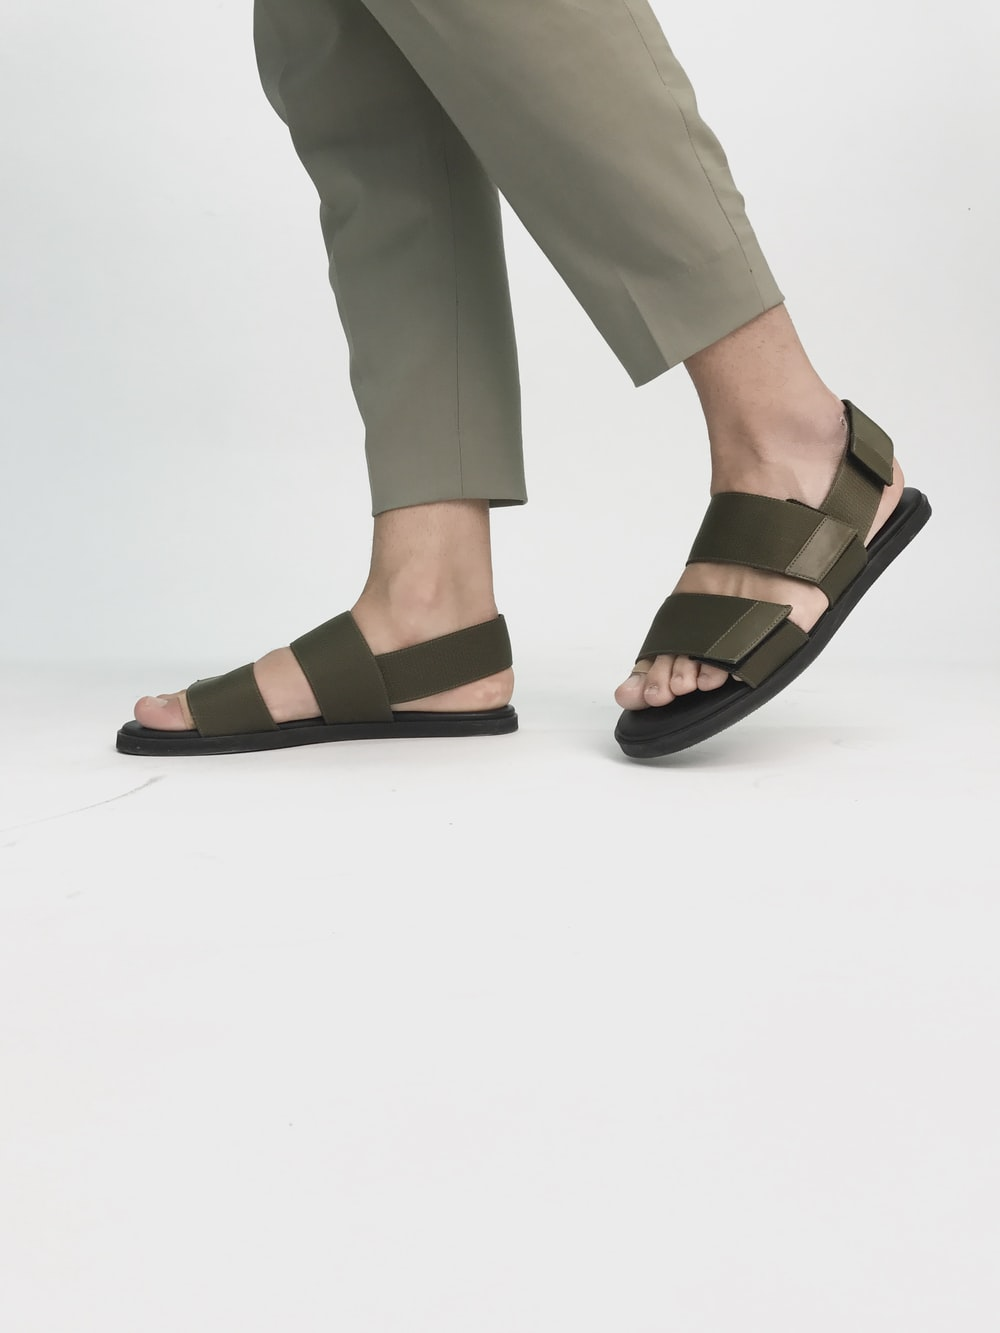 person in black velcro sandals